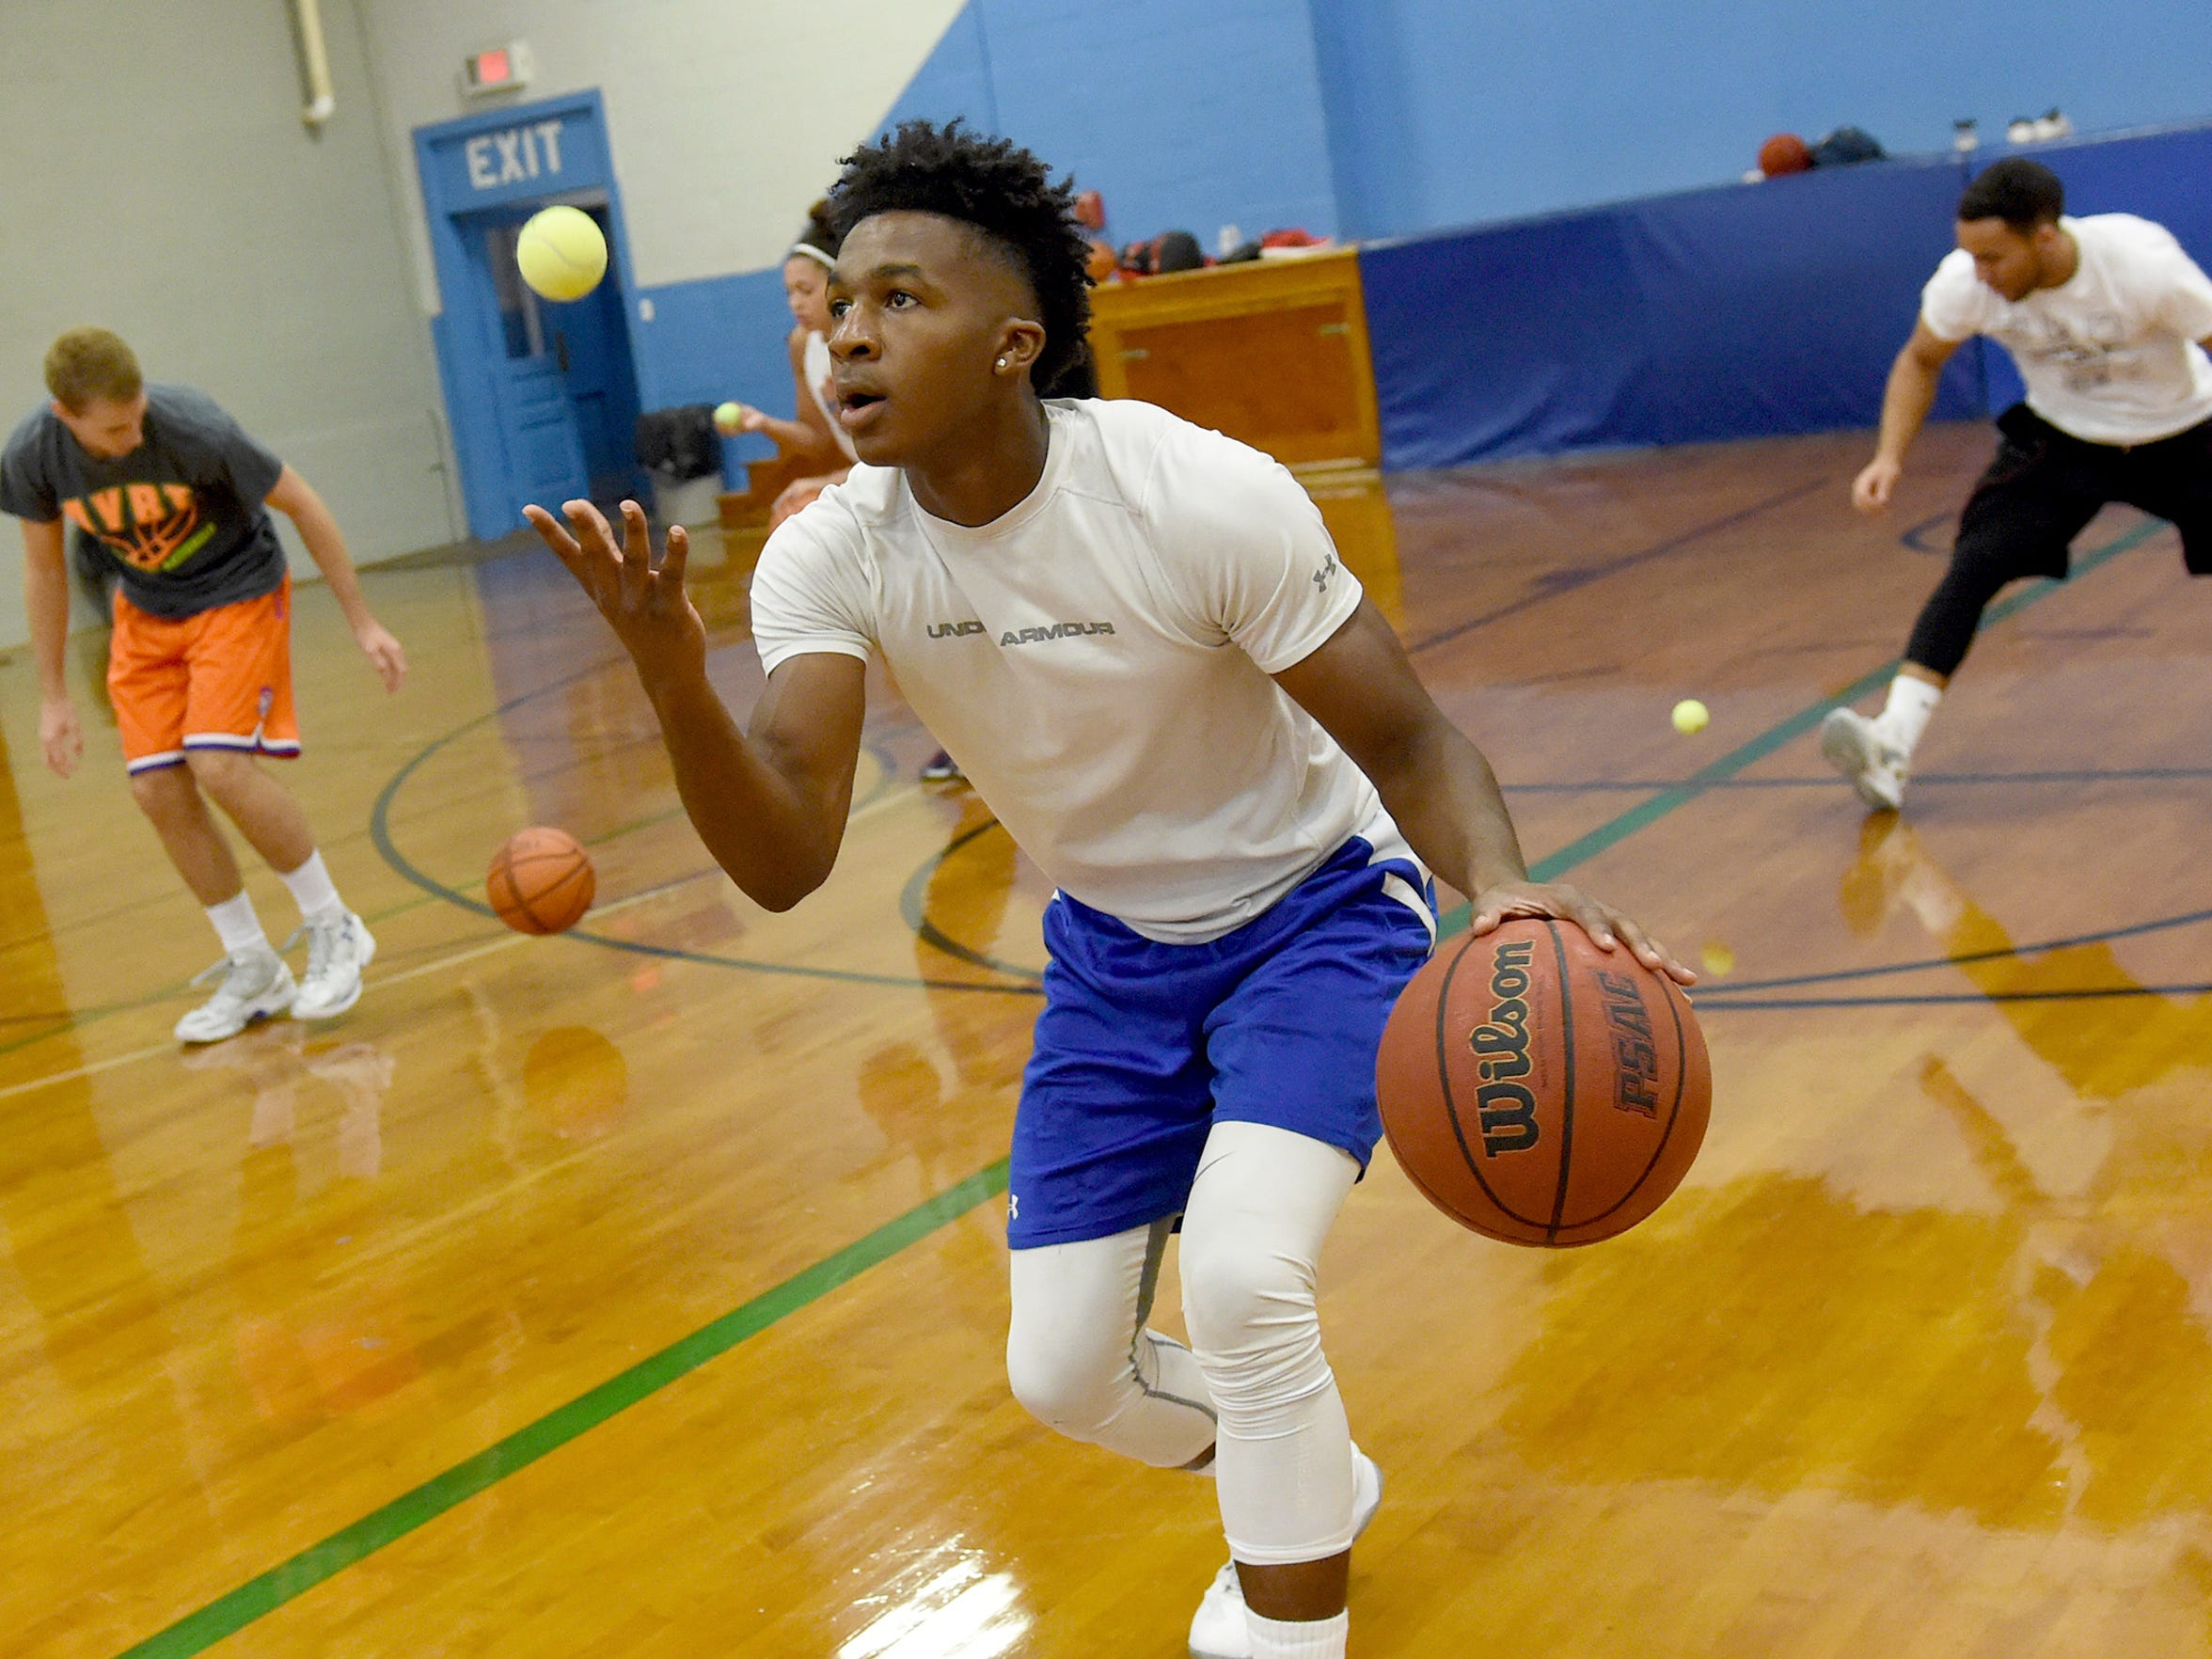 The structure and support offered by basketball teams and coaches helped Montrel Morgan navigate his way to a successful academic and athletic career in York. He is open to a basketball career after college, but if that doesn't happen, he said he'll join the Air Force.